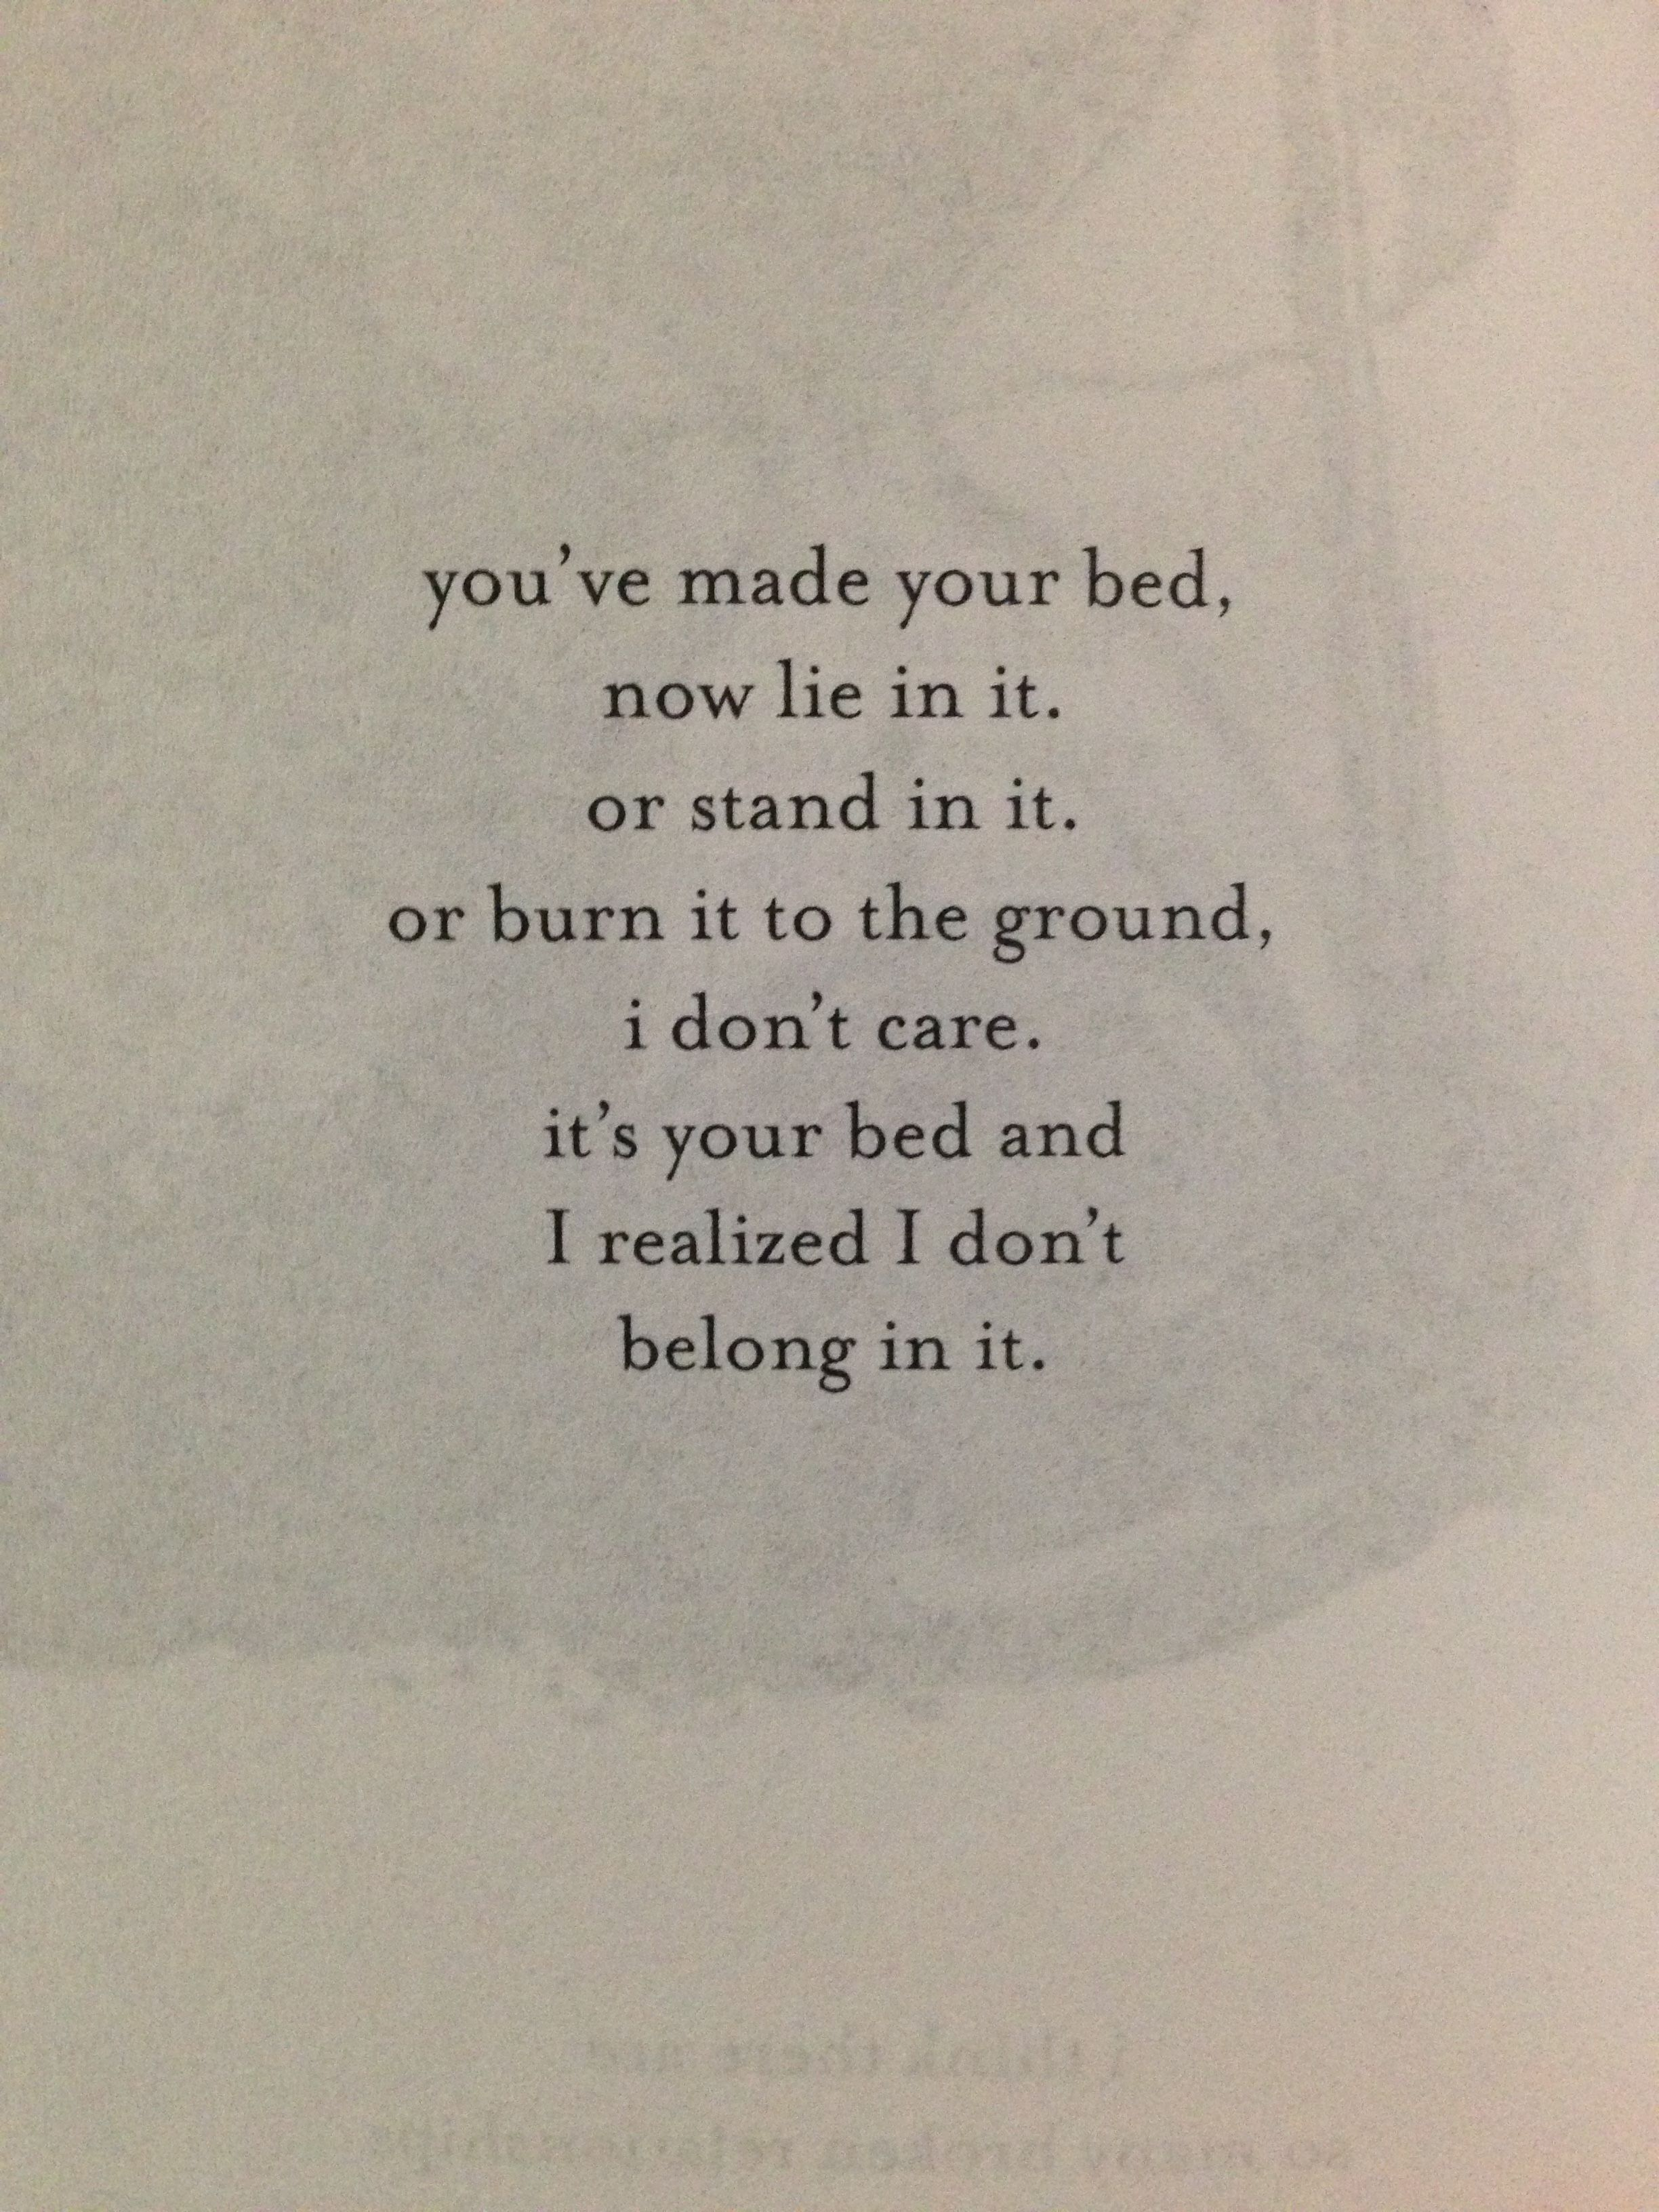 Burn Your Bed To The Ground Jm Storm Make Your Bed Quotes Burns